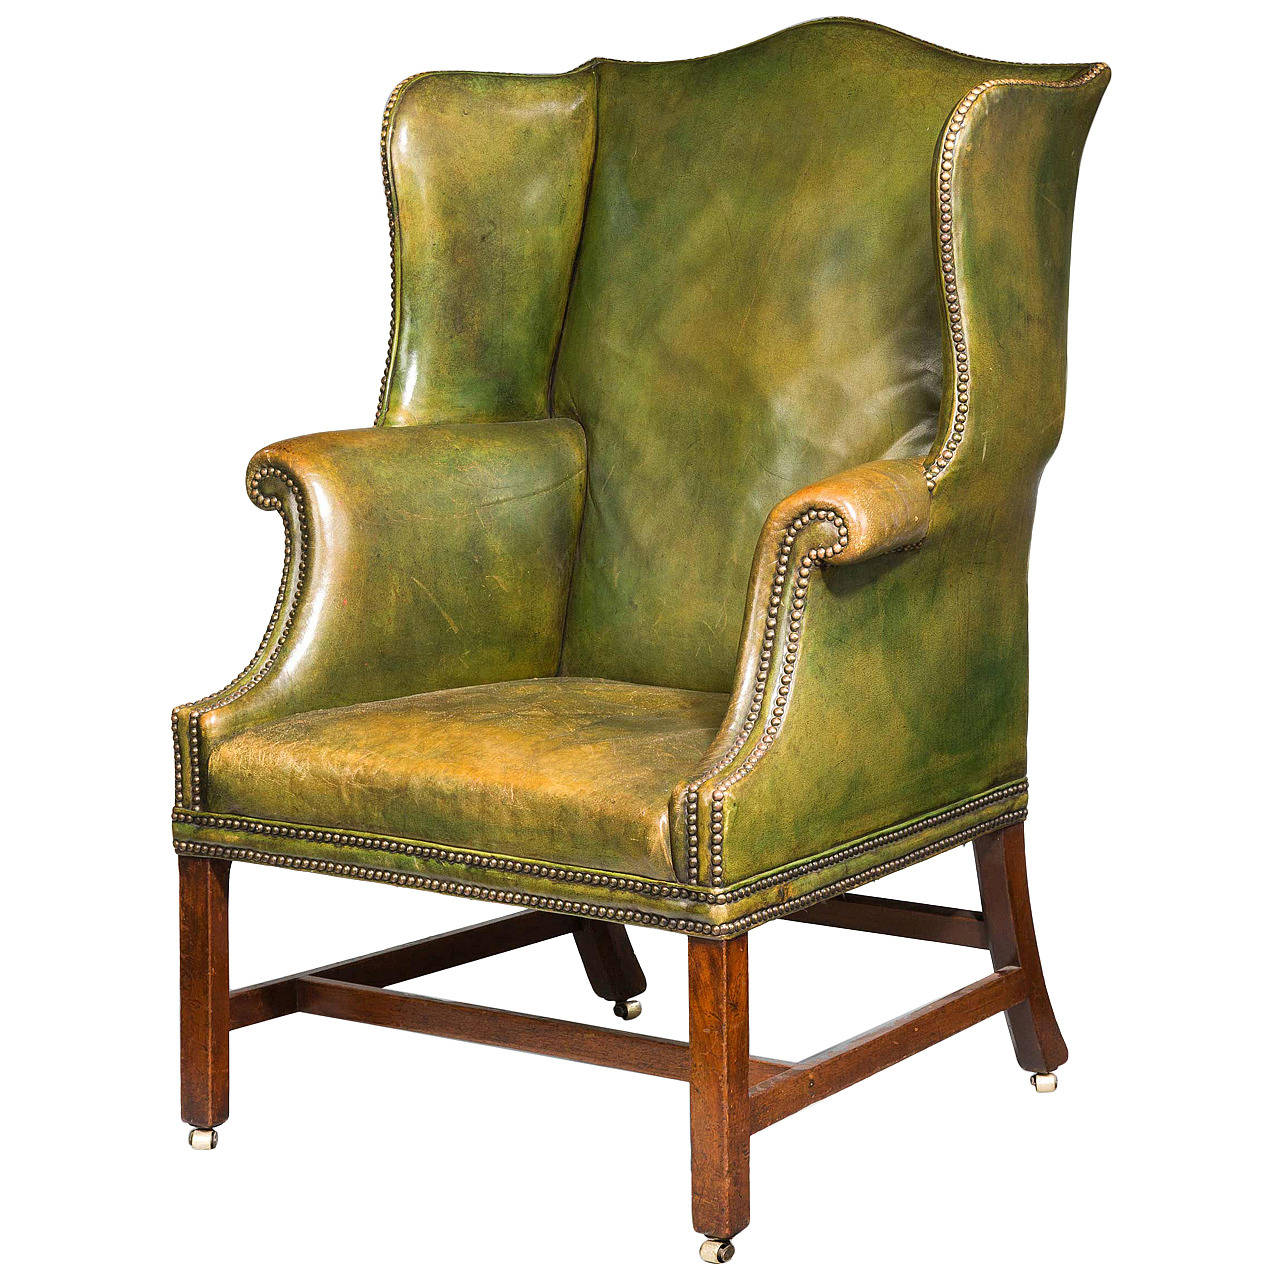 Chippendale period wing chair for sale at 1stdibs for Wingback chair